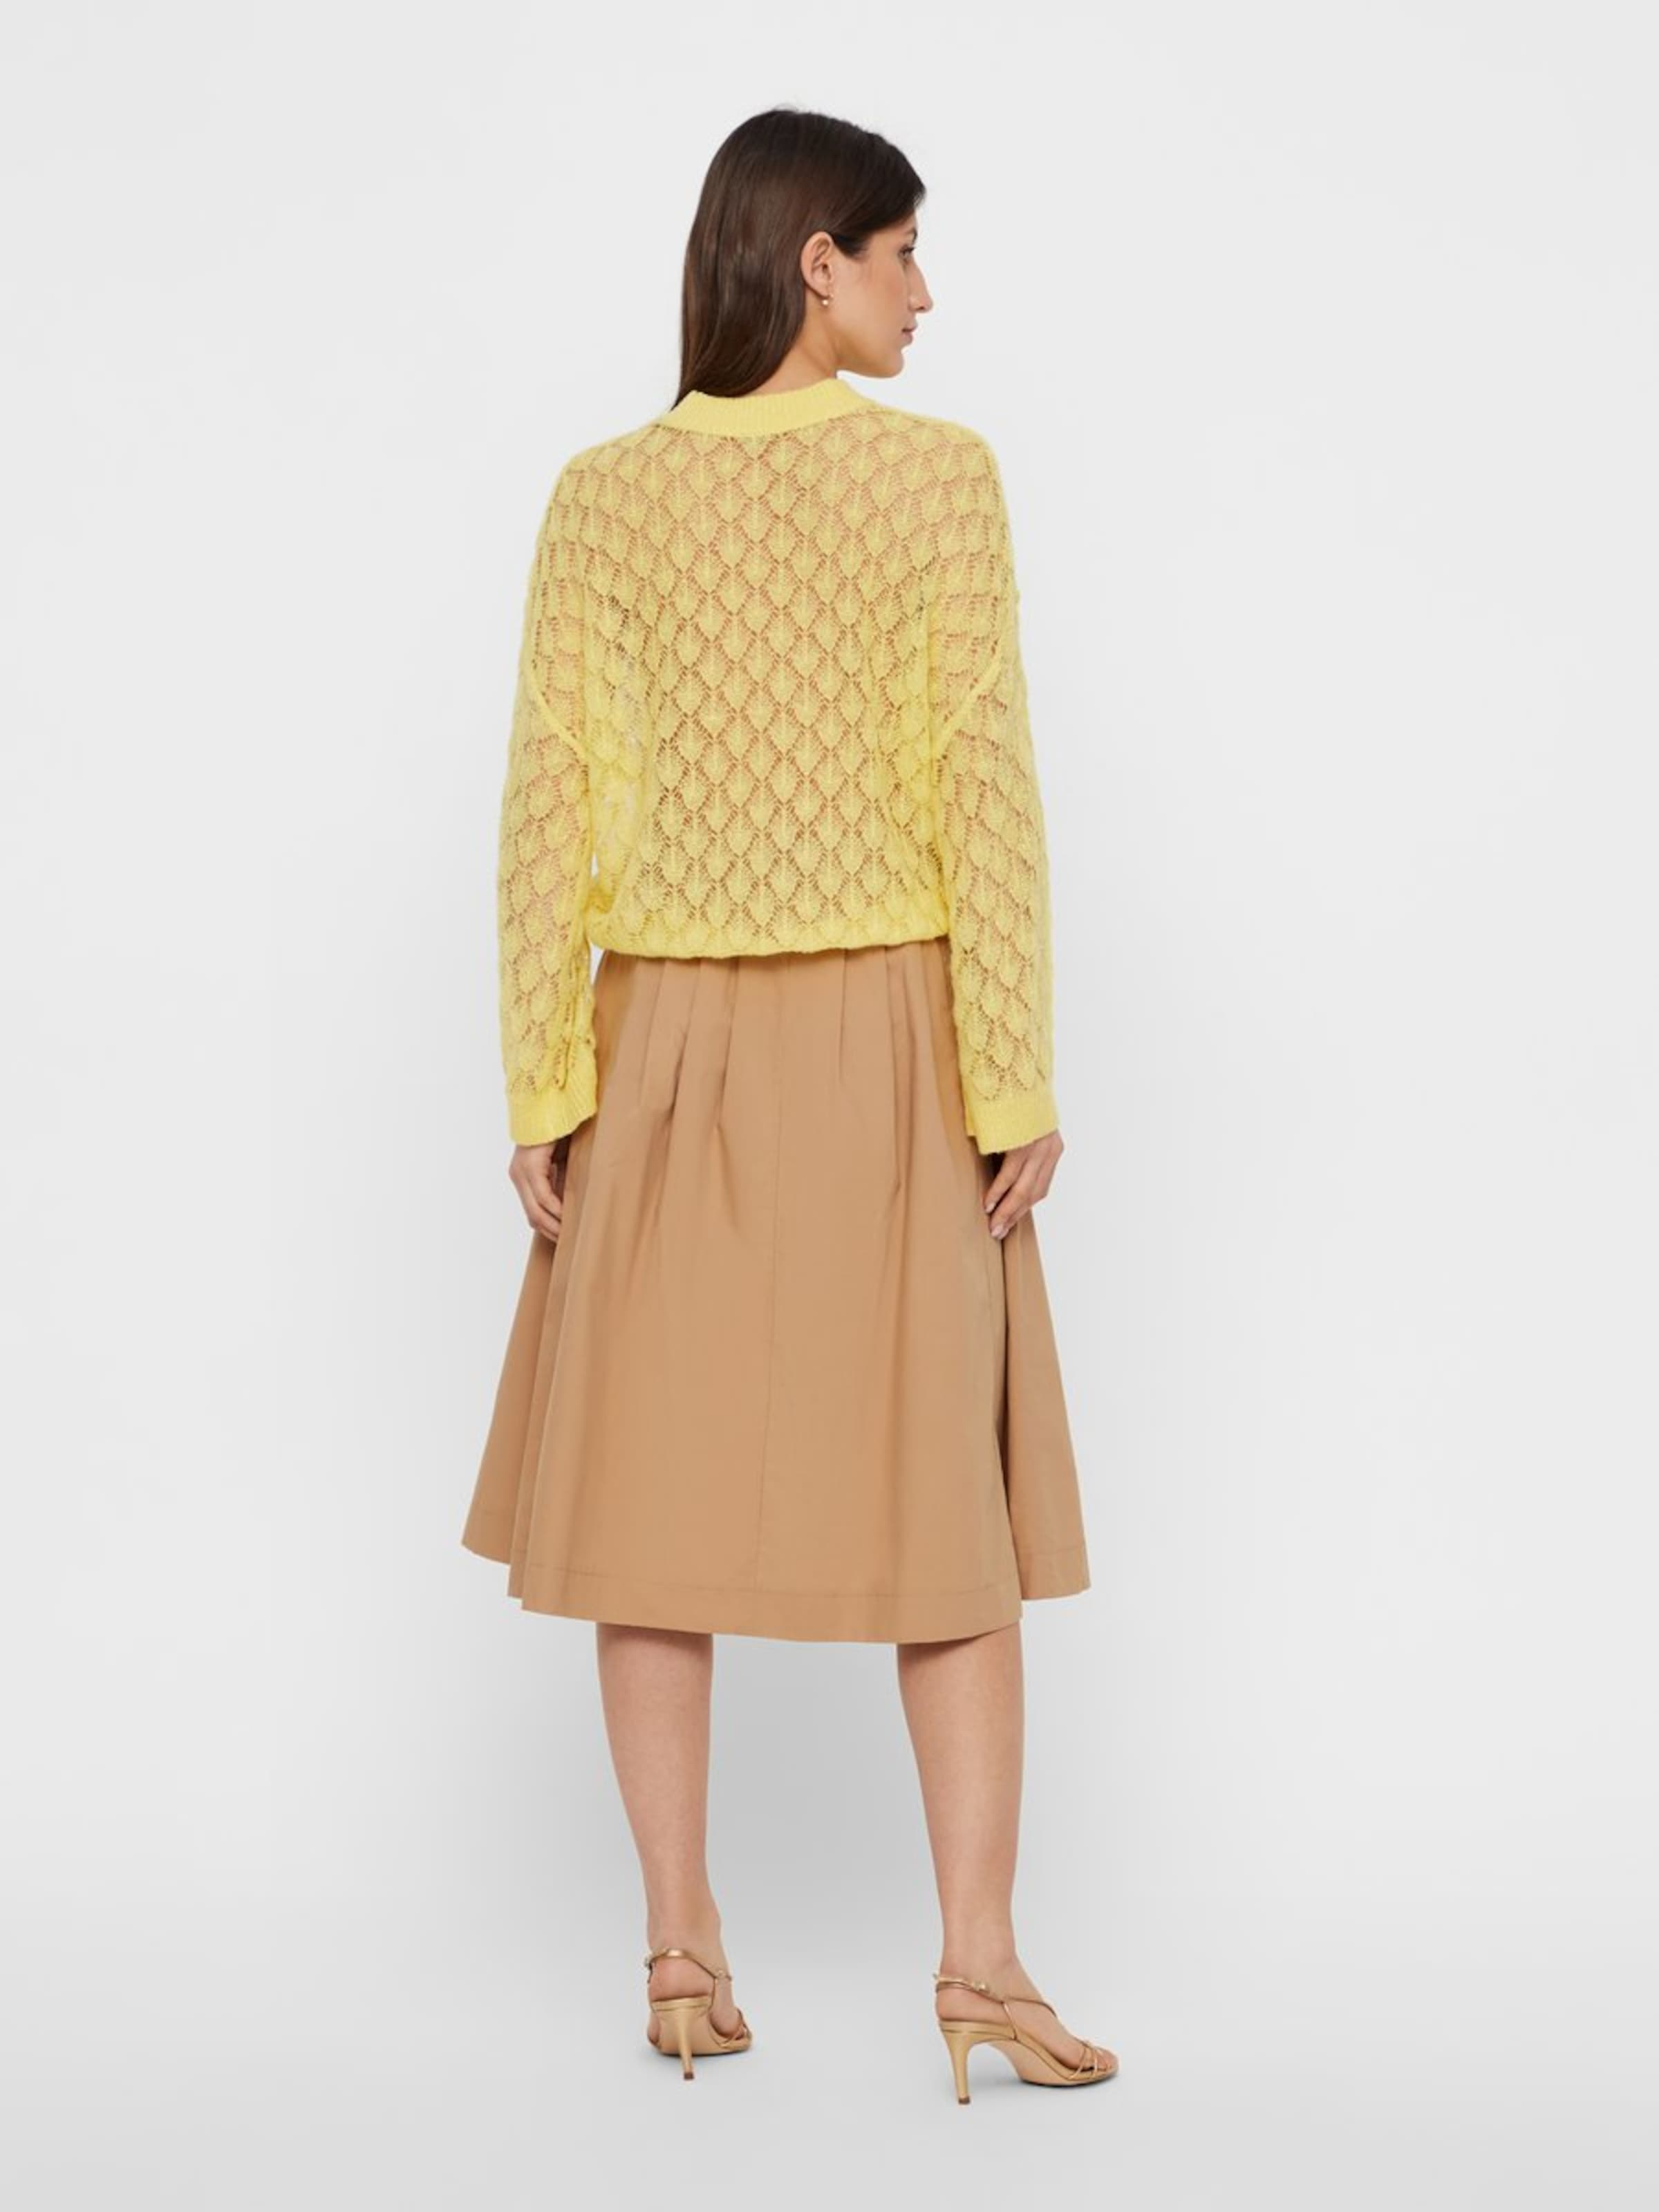 over En Y a s Jaune Pull mN8nvw0